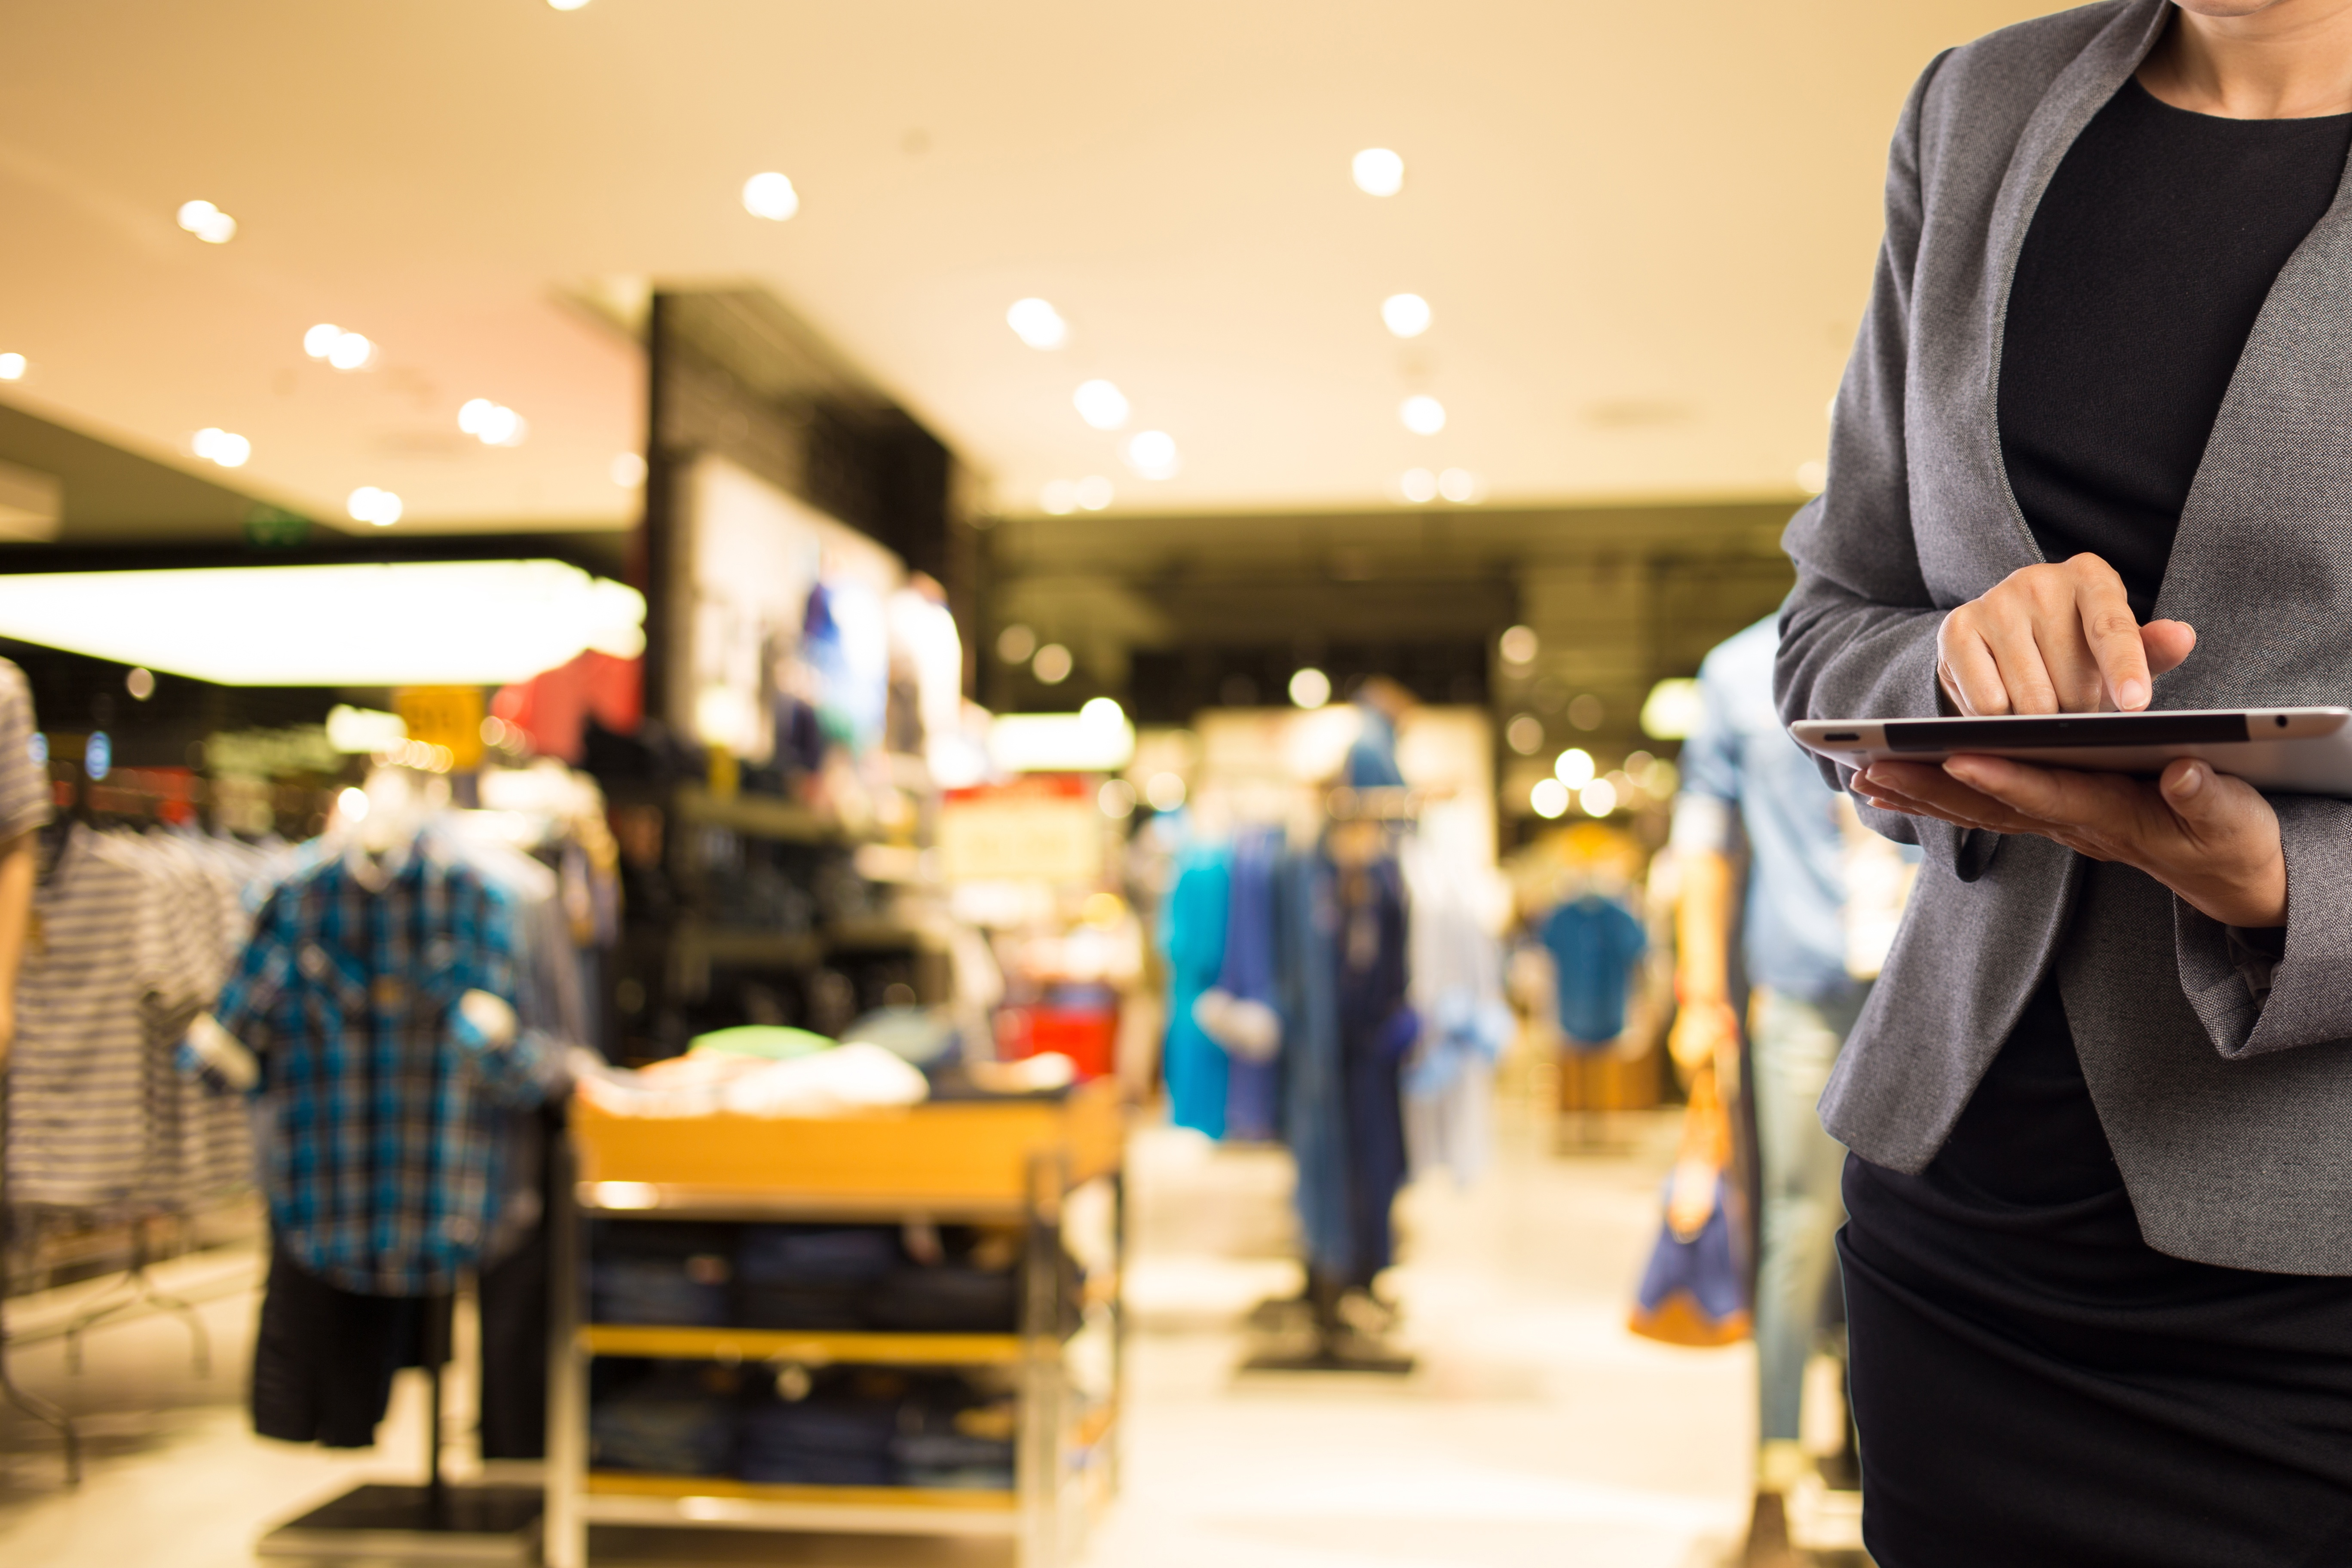 A Guide for Selecting the Best POS Tablet for Retail Business